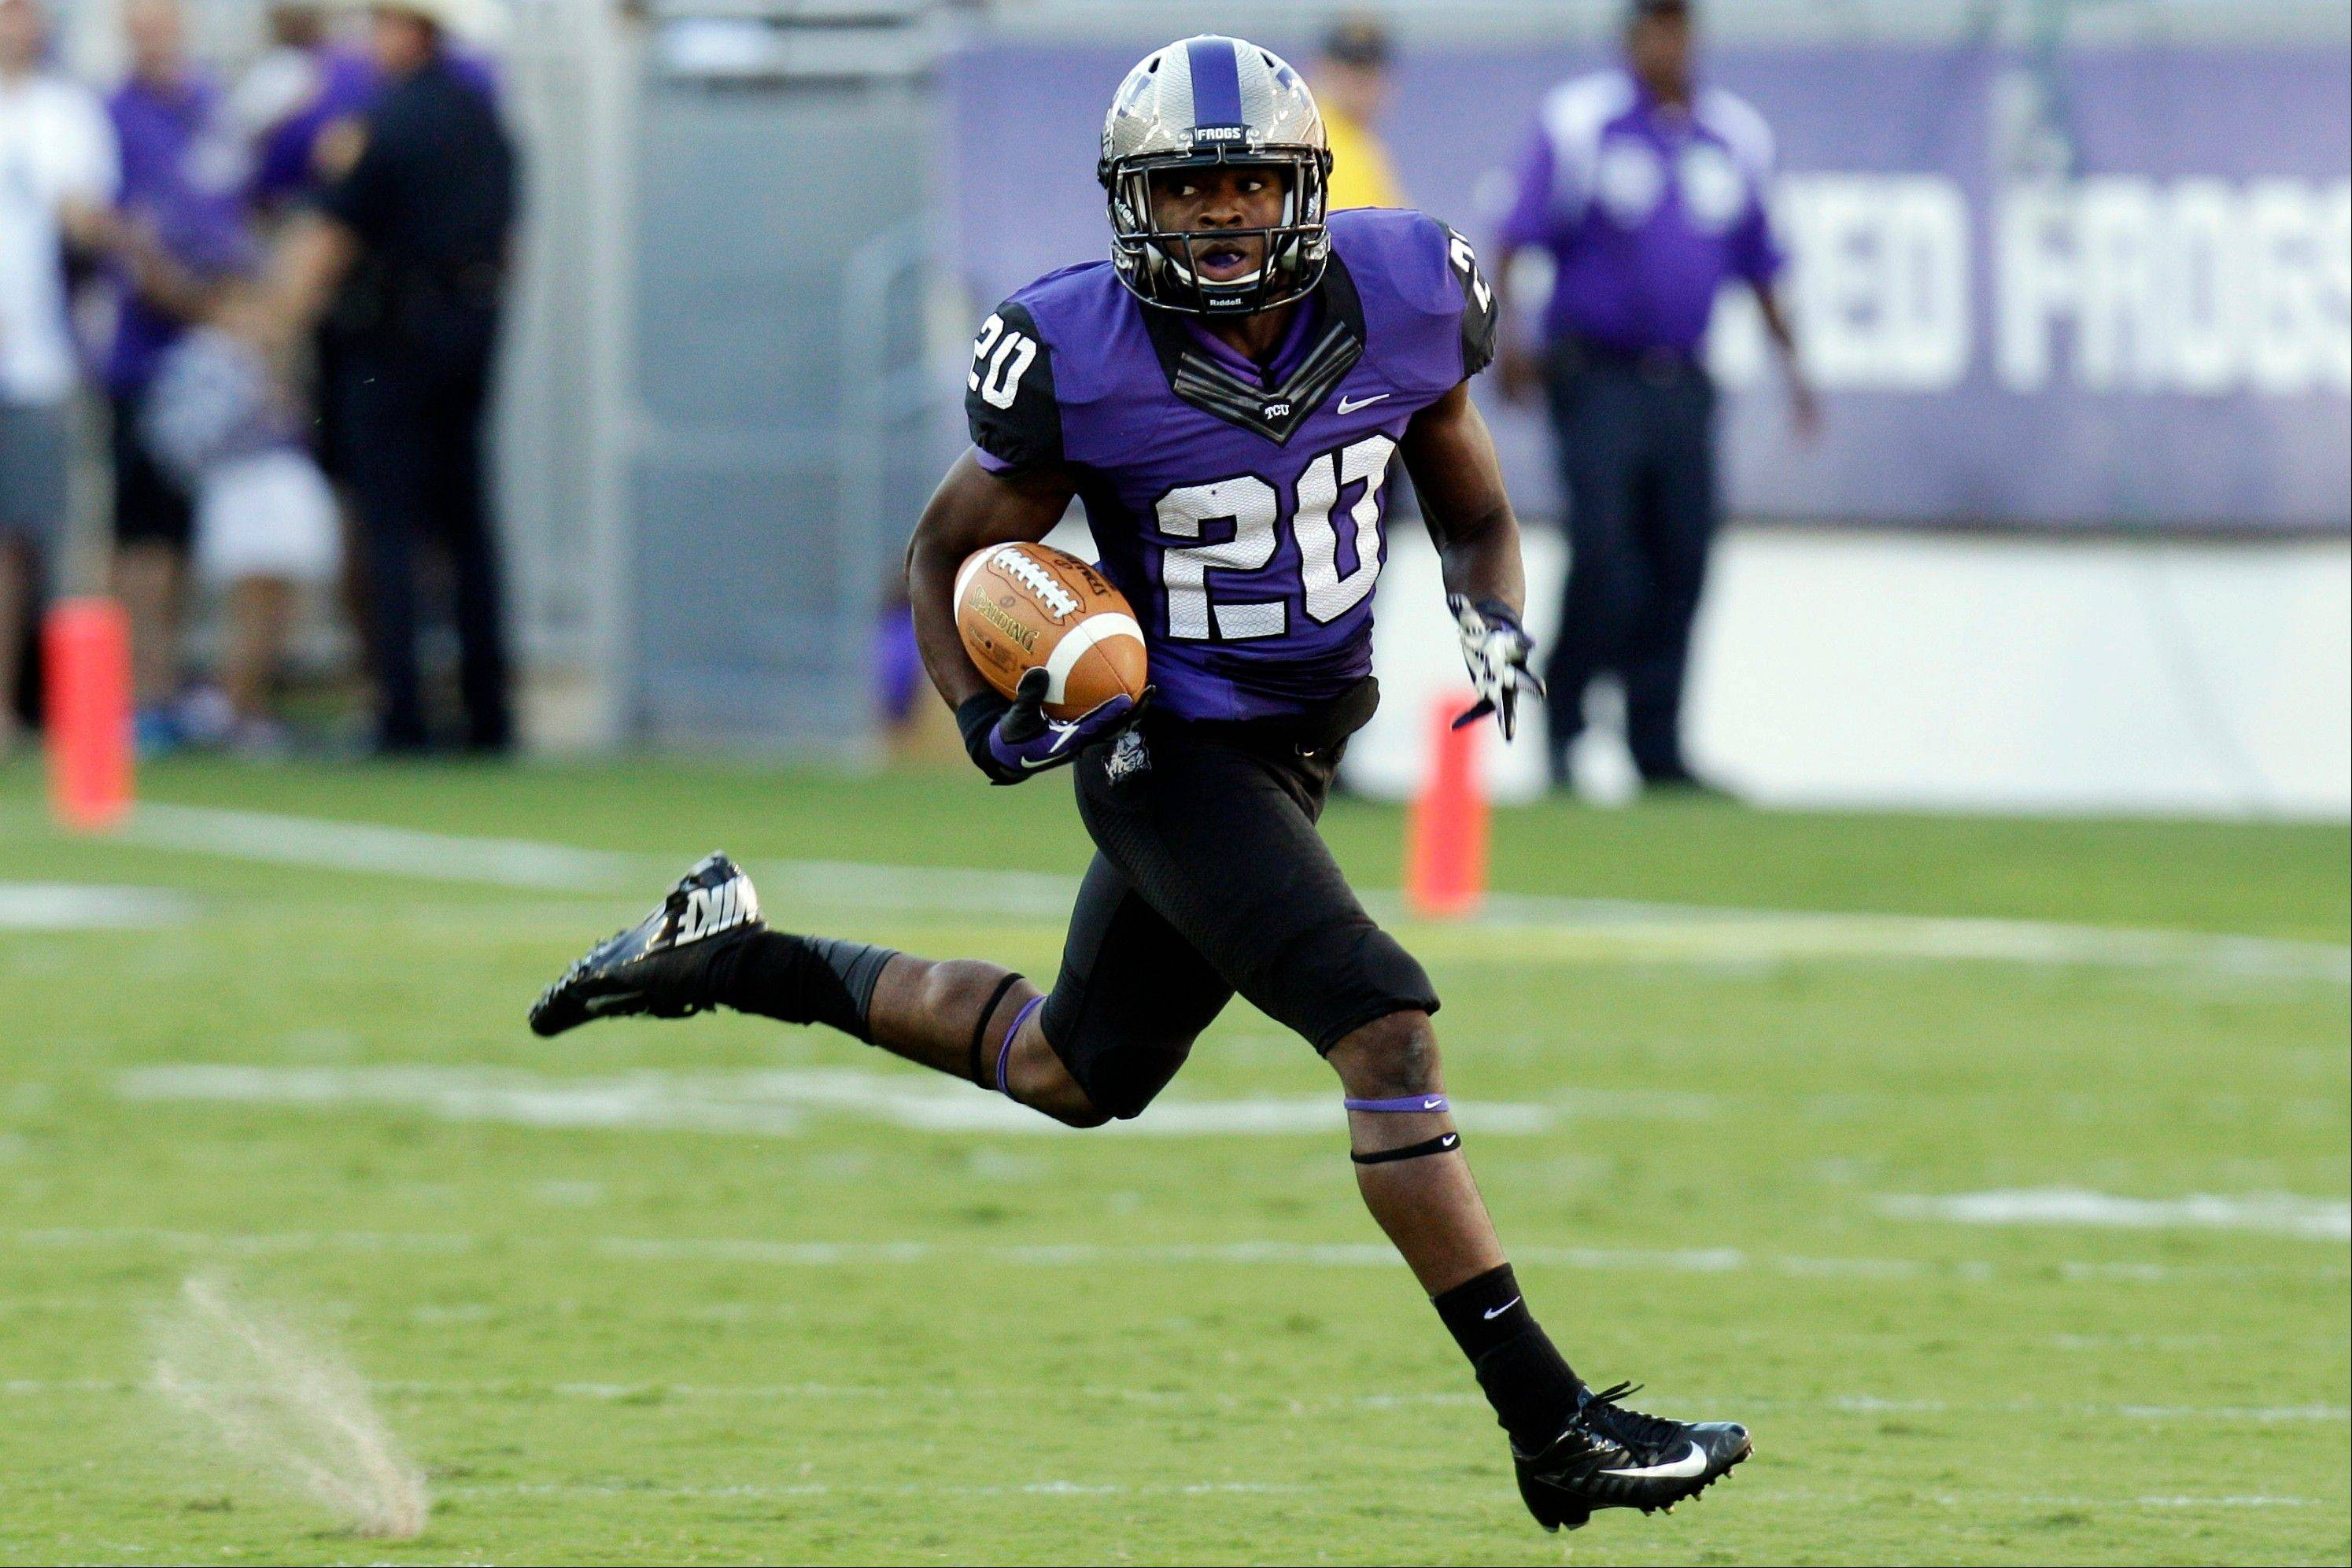 TCU running back Aaron Green runs back a punt return for a touchdown during the first half Saturday against Grambling State in Fort Worth, Texas.